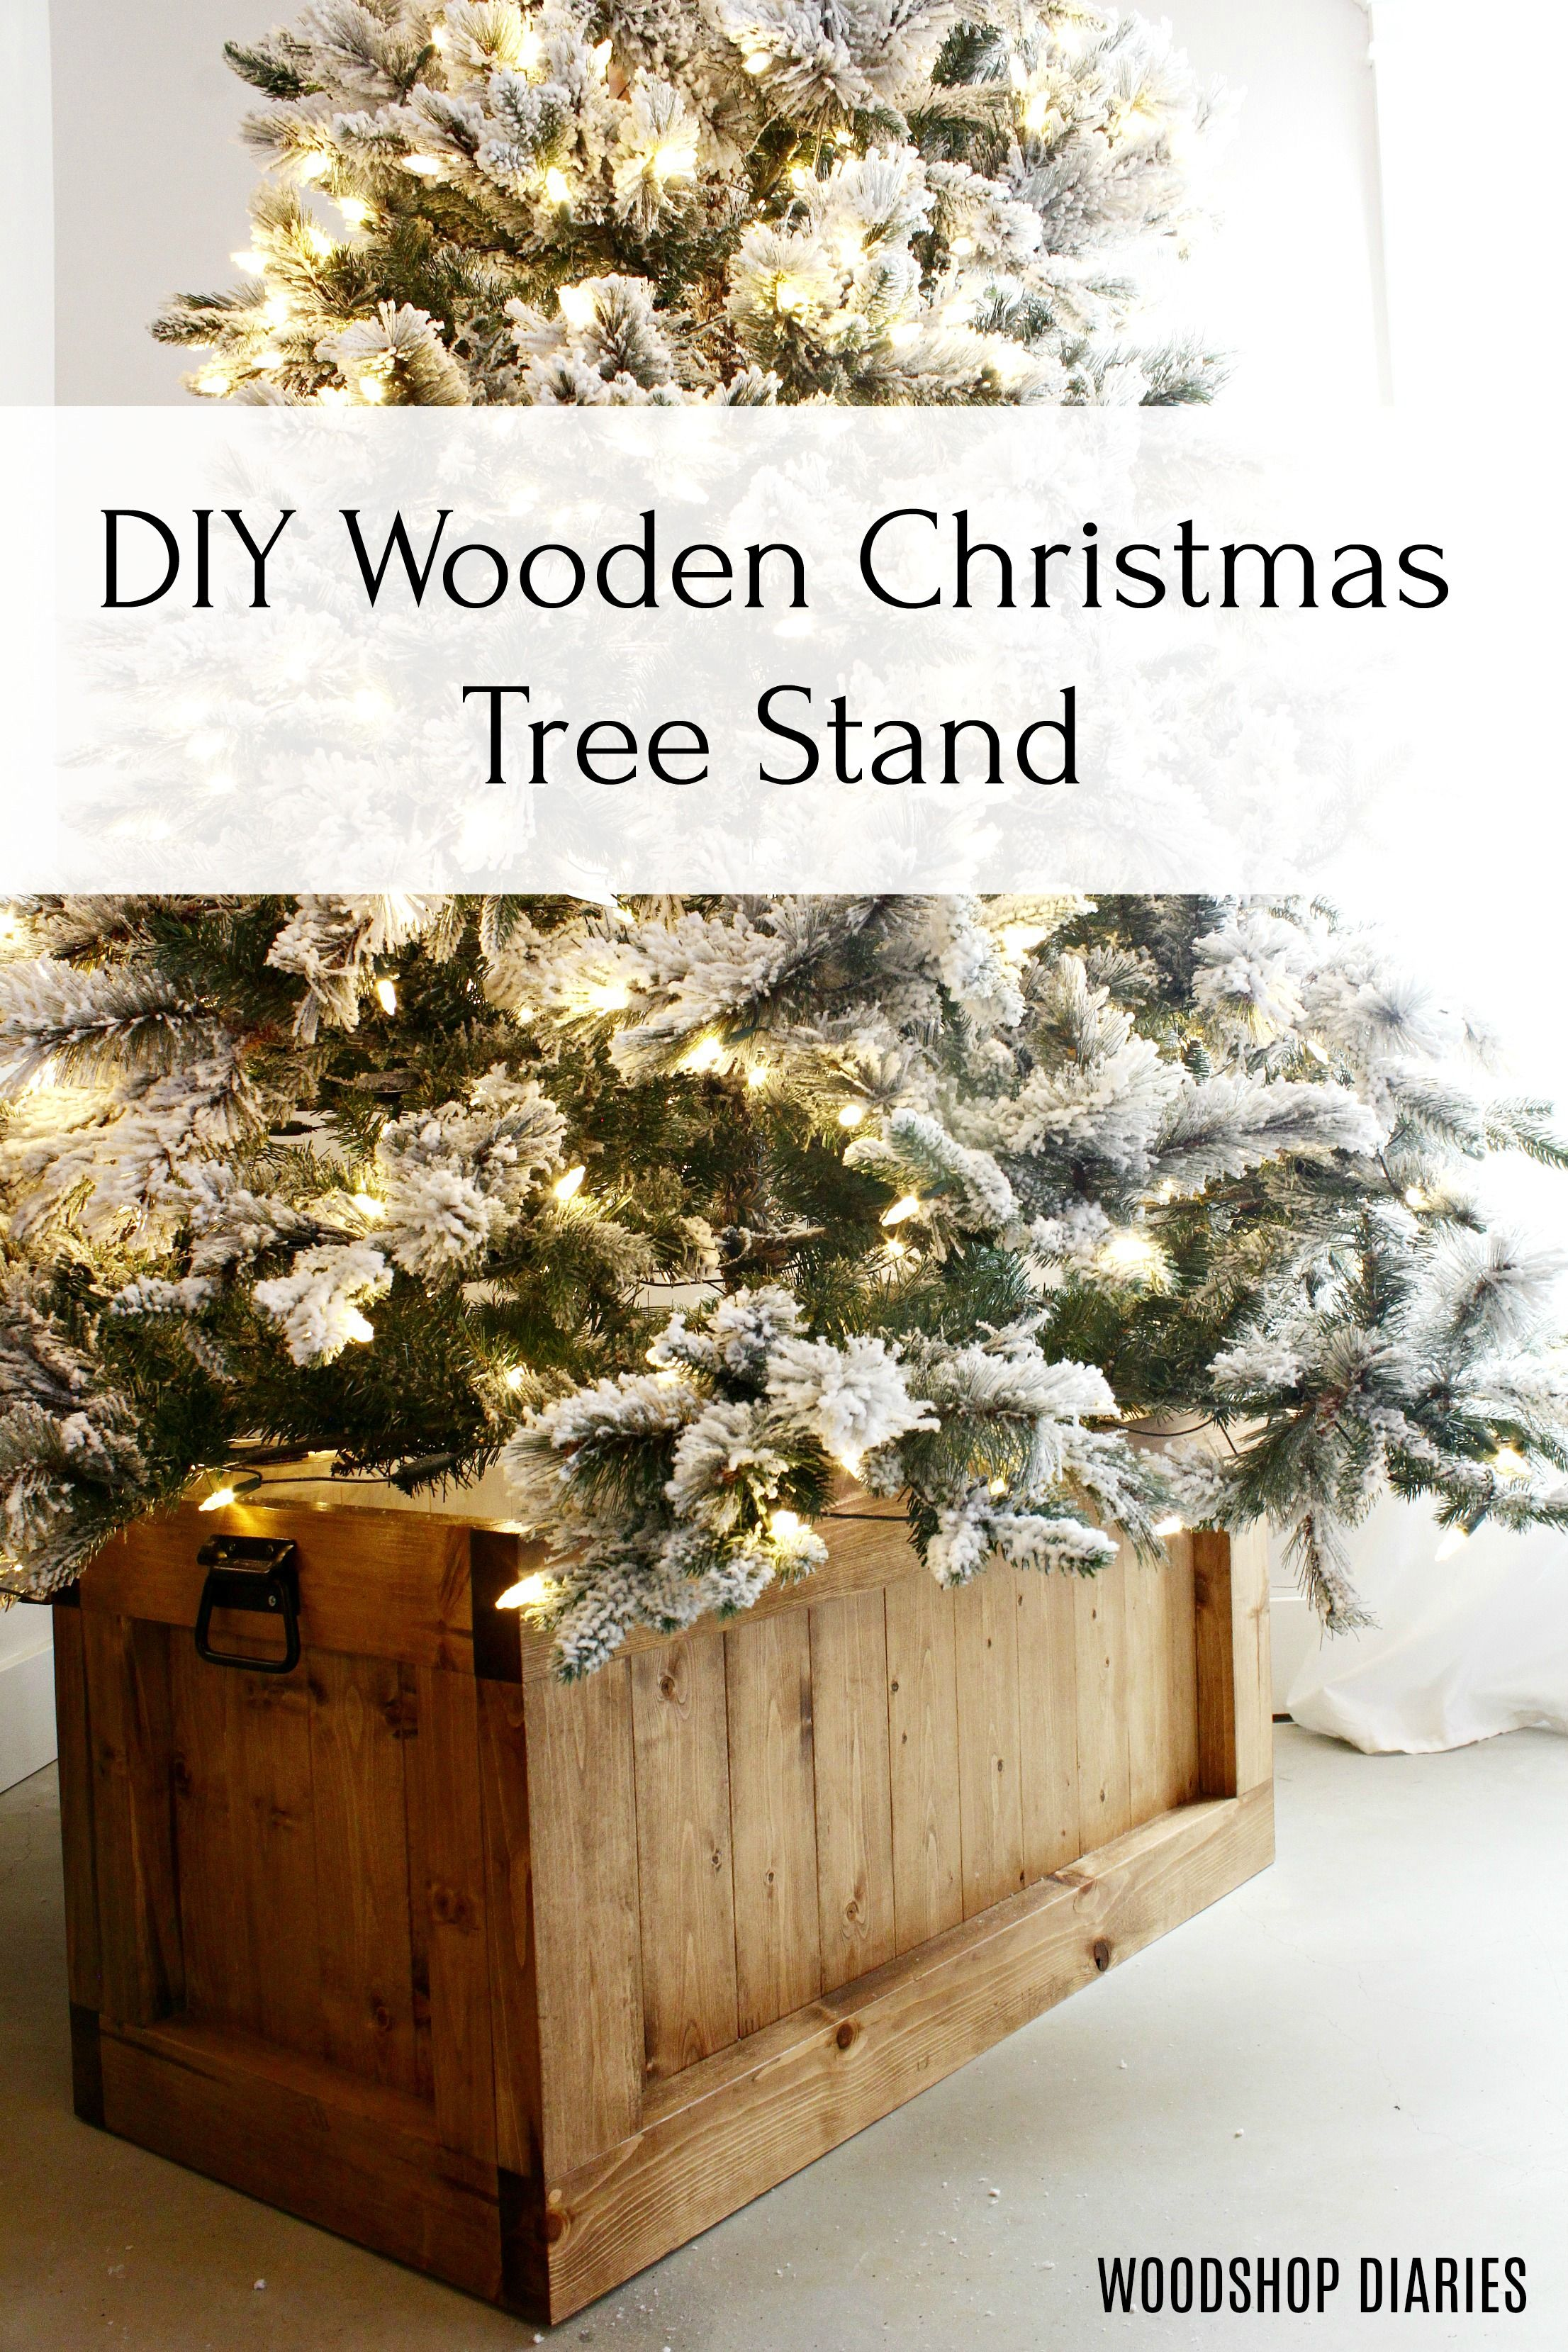 How To Build A Diy Hope Chest In 5 Steps Free Plans In 2020 Christmas Tree Box Wooden Christmas Trees Christmas Tree Box Stand